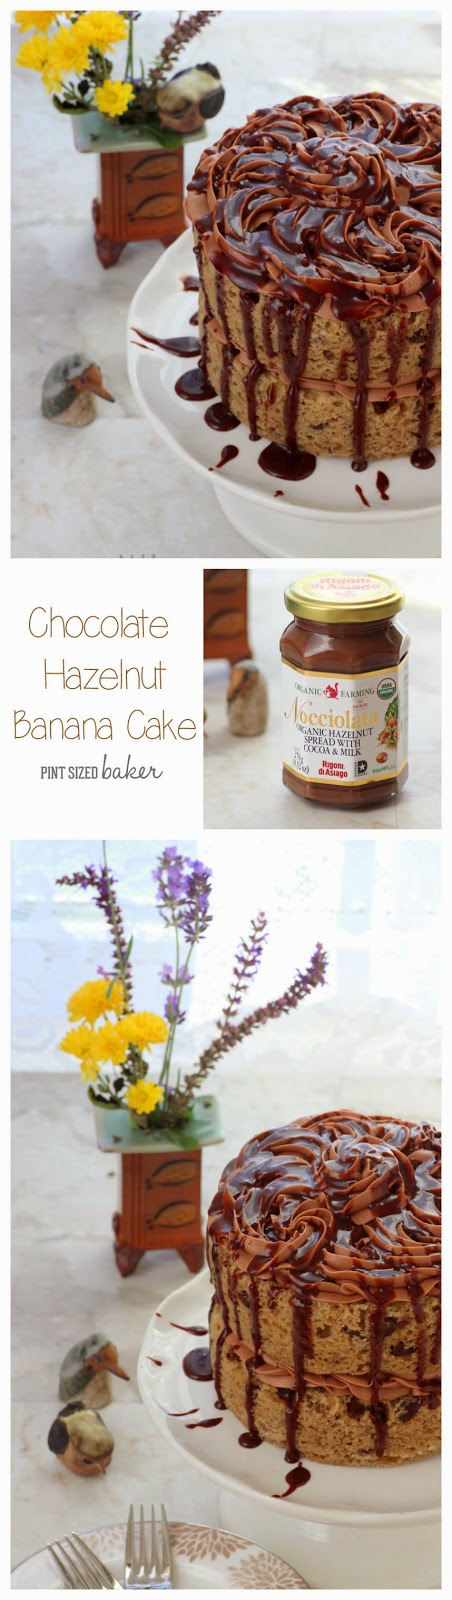 Chocolate Hazelnut Frosting on a Banana Layer Cake. Simple and Amazing for a birthday cake.